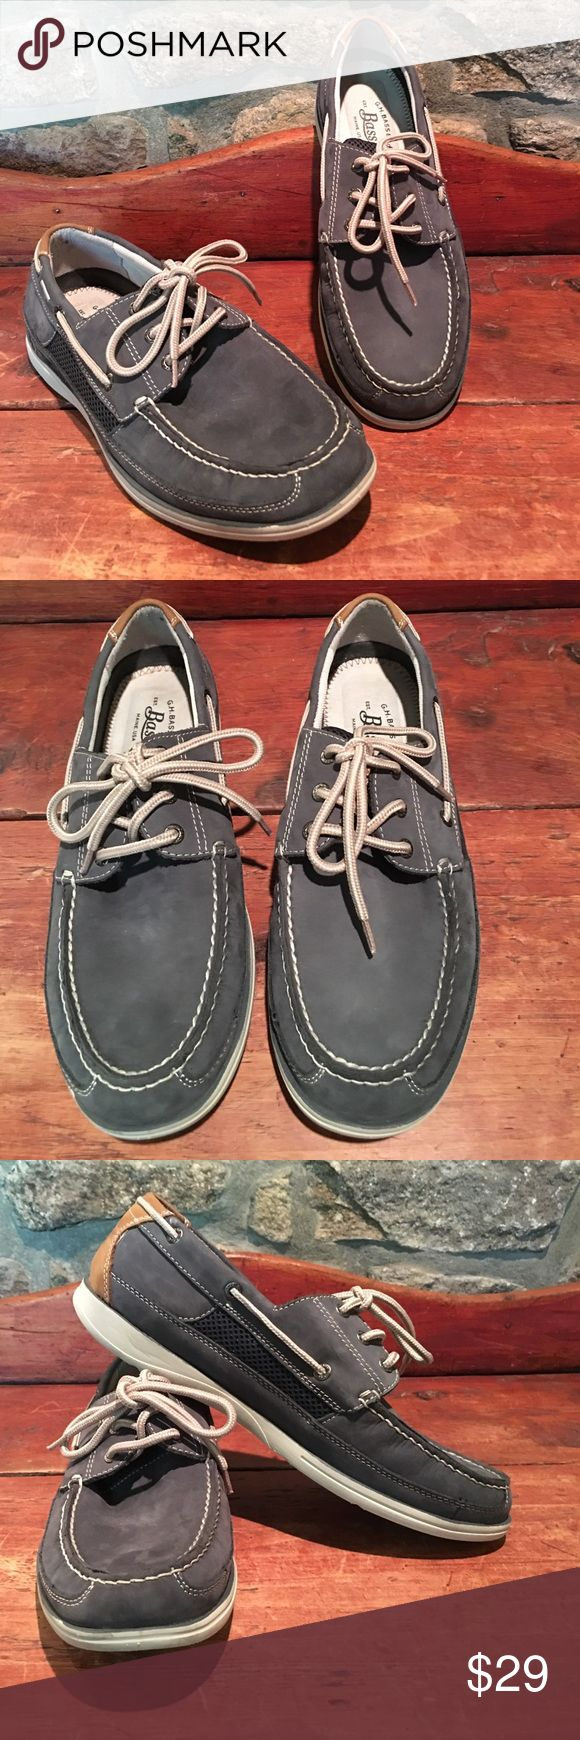 G.H. Bass & CO. Blue Men's Loafers G.H. Bass & CO. Blue Men's Loafers. These very nice Bass loafers are in great condition. Size 11. G.H. Bass & CO. Shoes Loafers & Slip-Ons